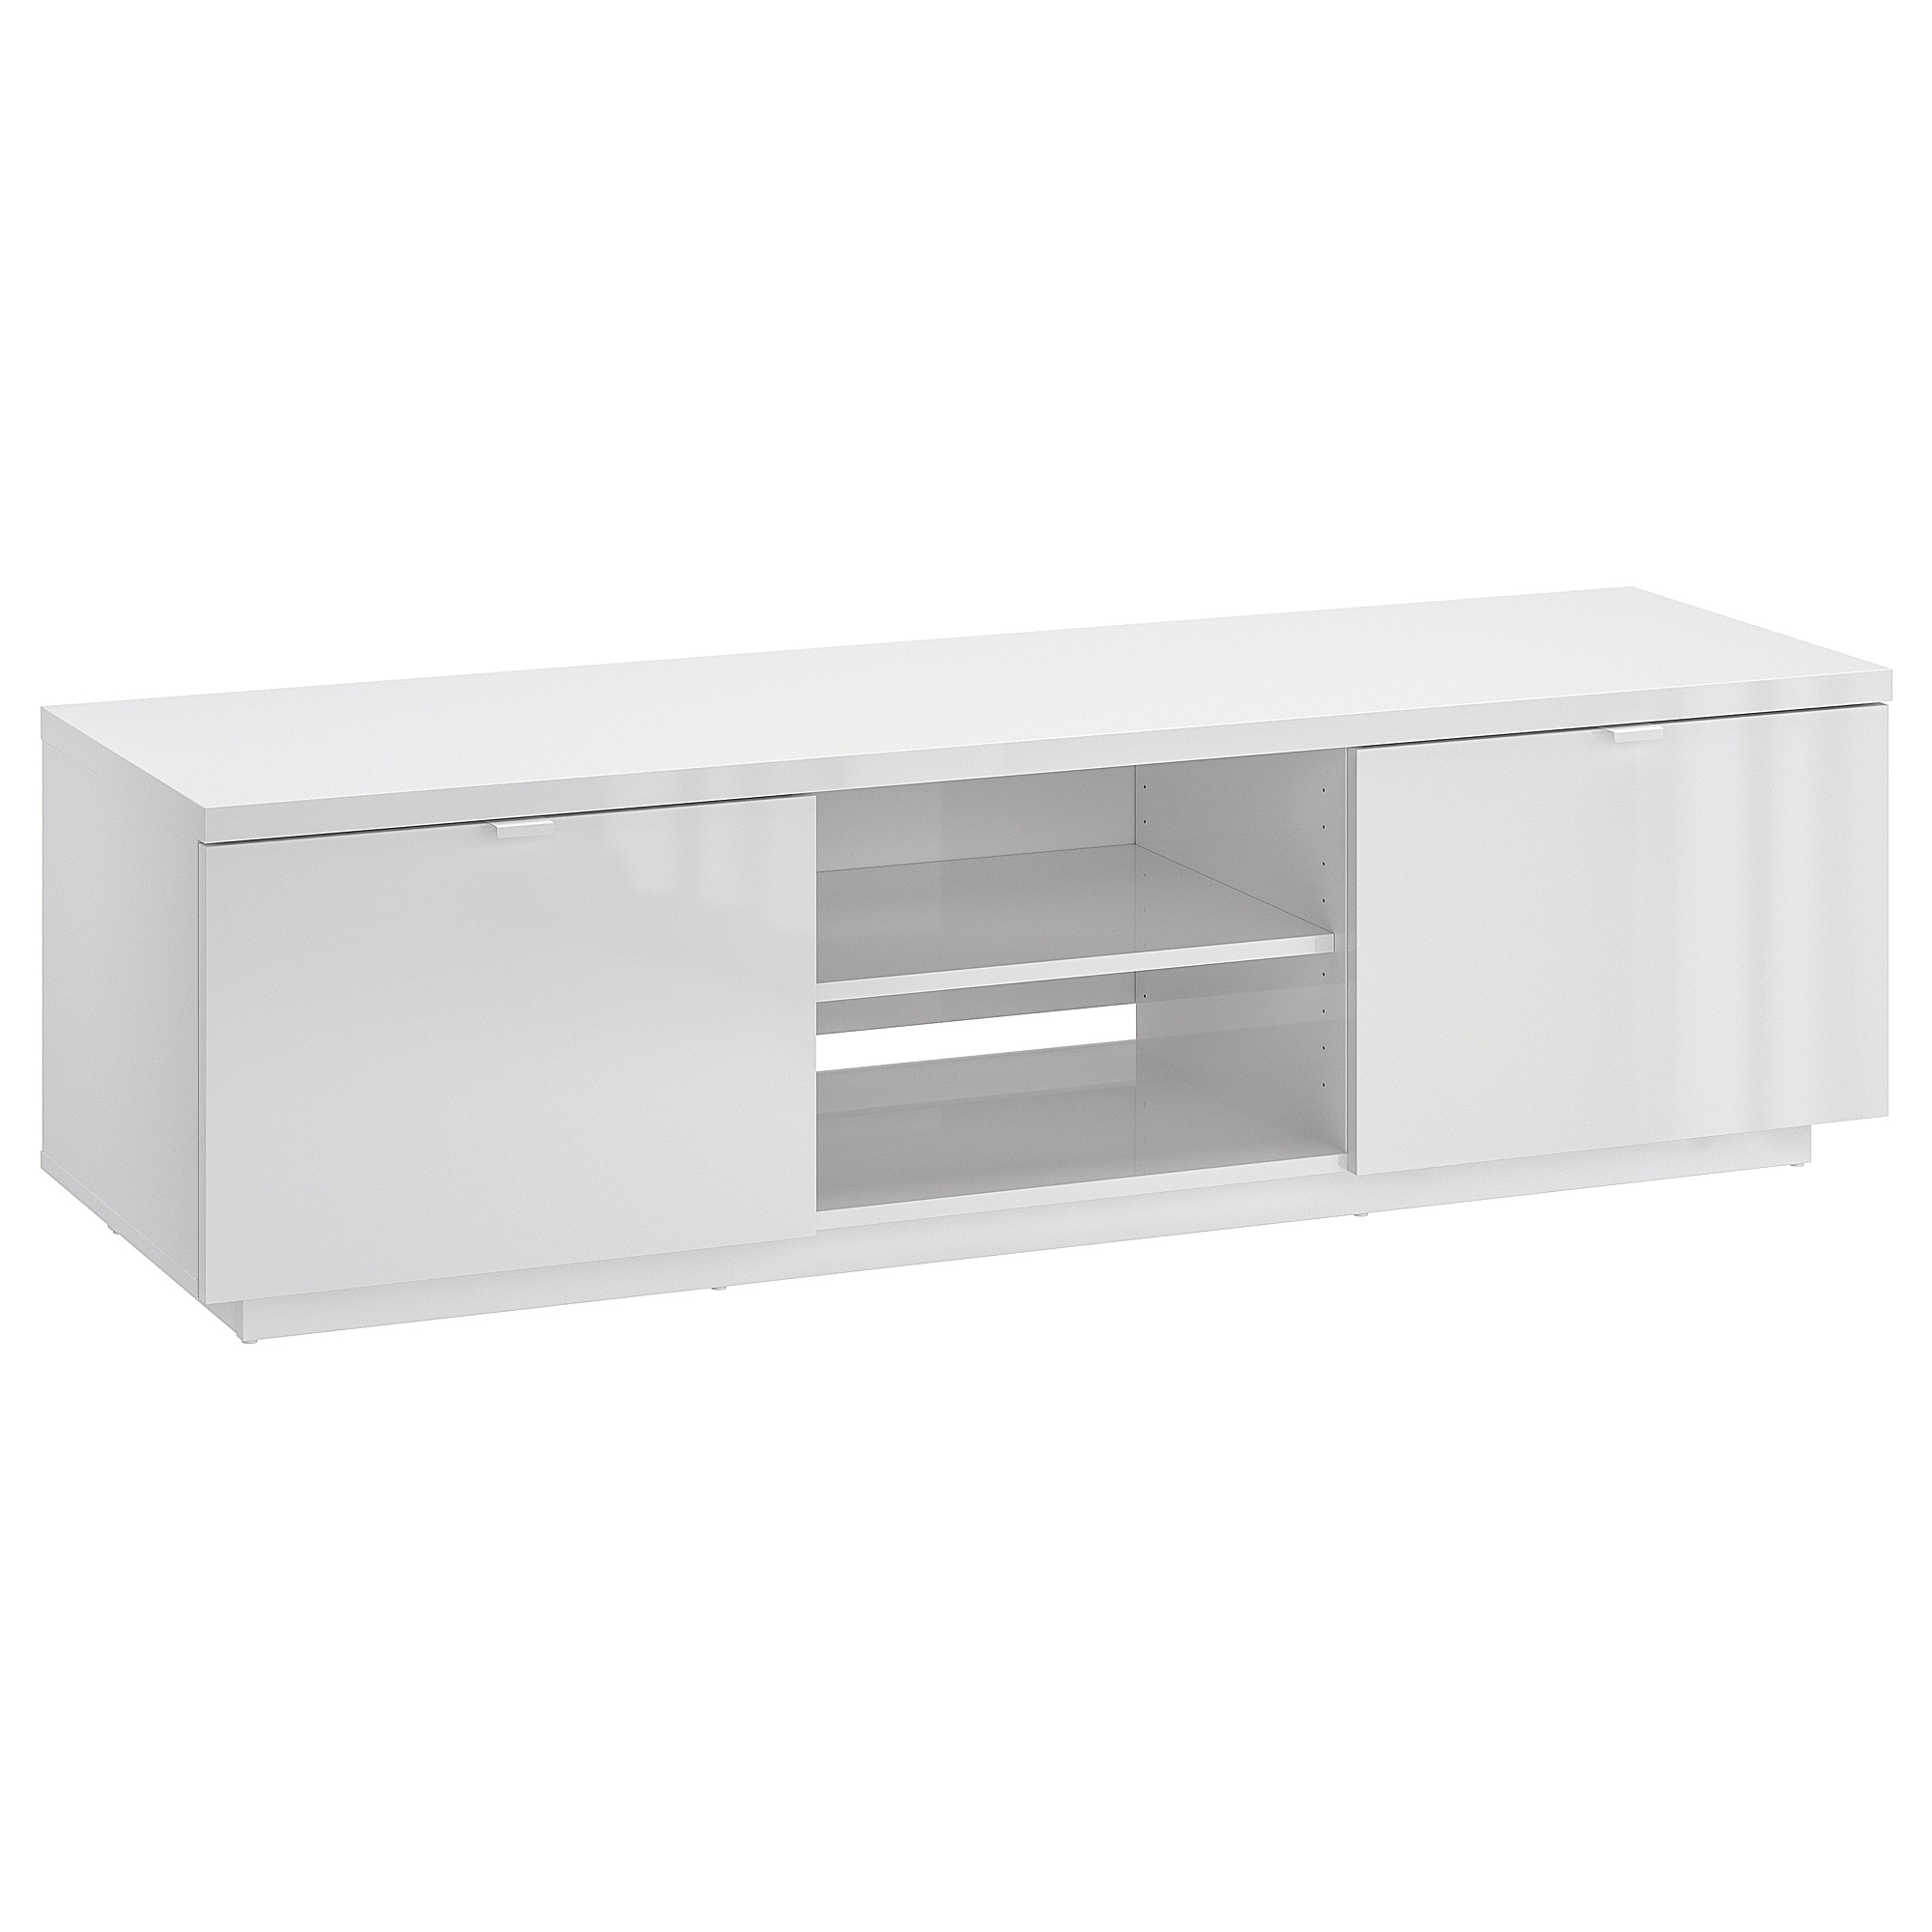 Ikea White Gloss Tv Units Within 2017 Tv Stands & Tv Units (Gallery 1 of 20)